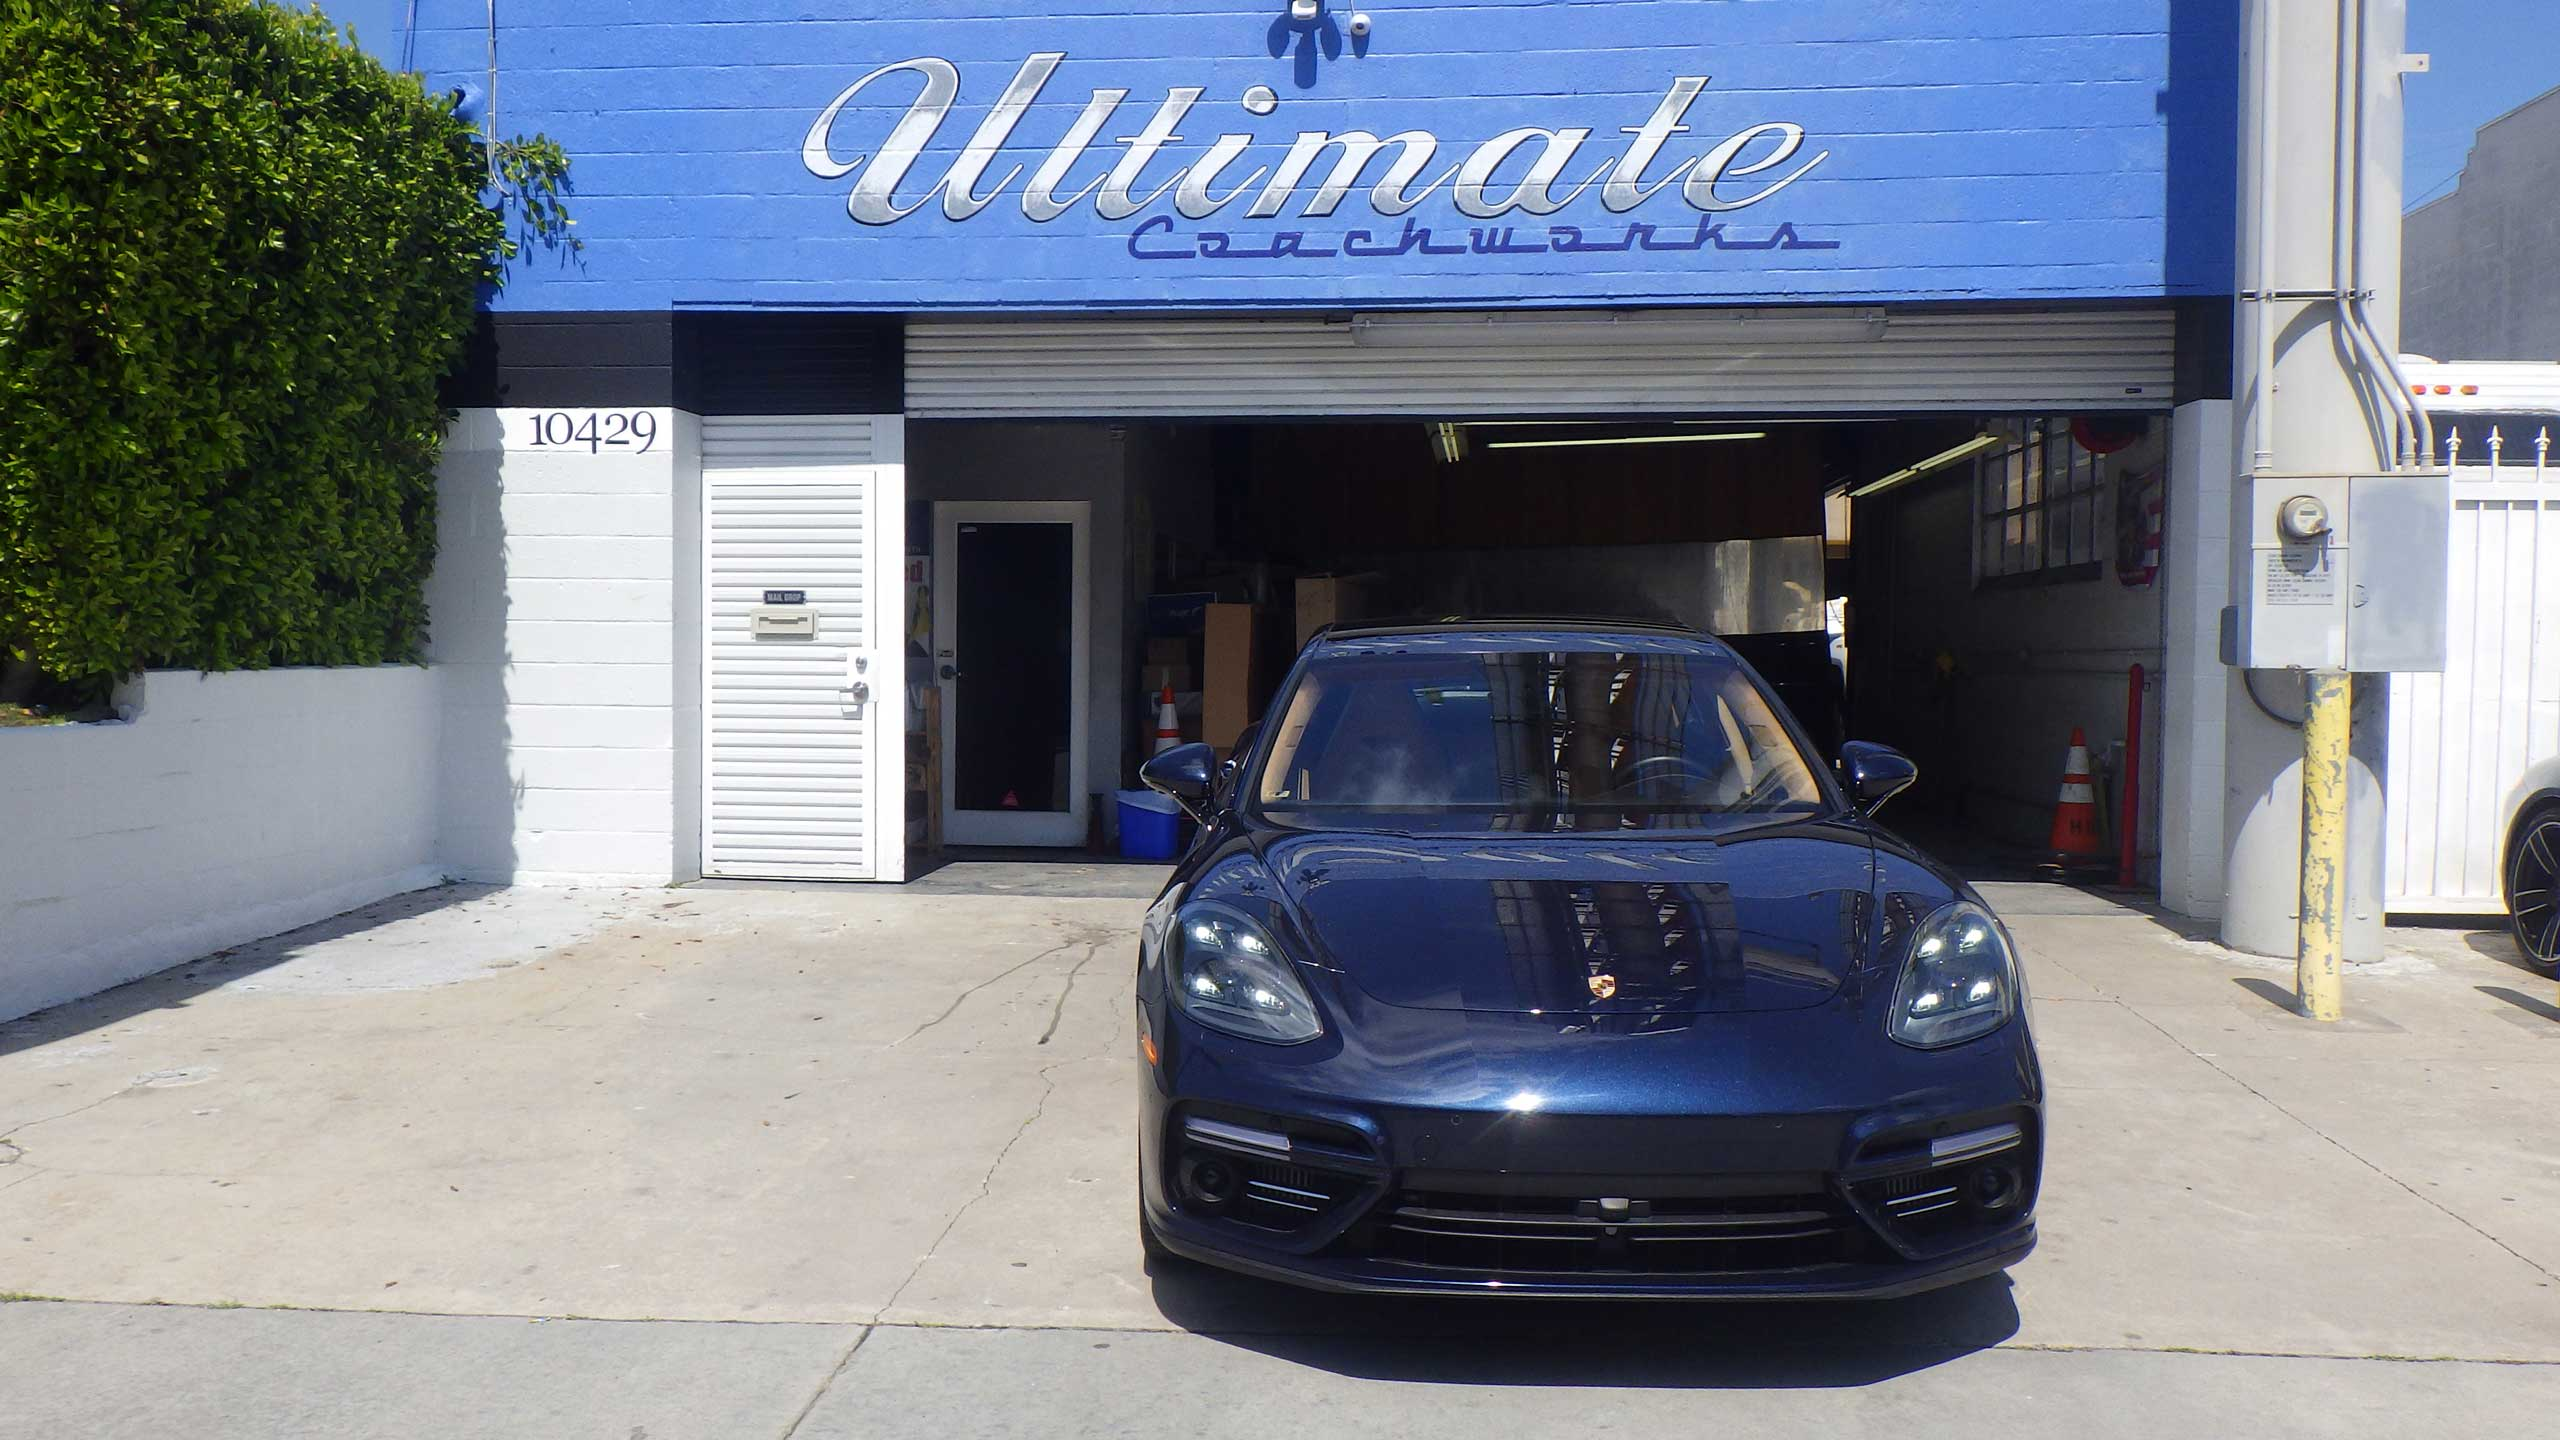 UC_1_car_front_storefront_2560x1440-001